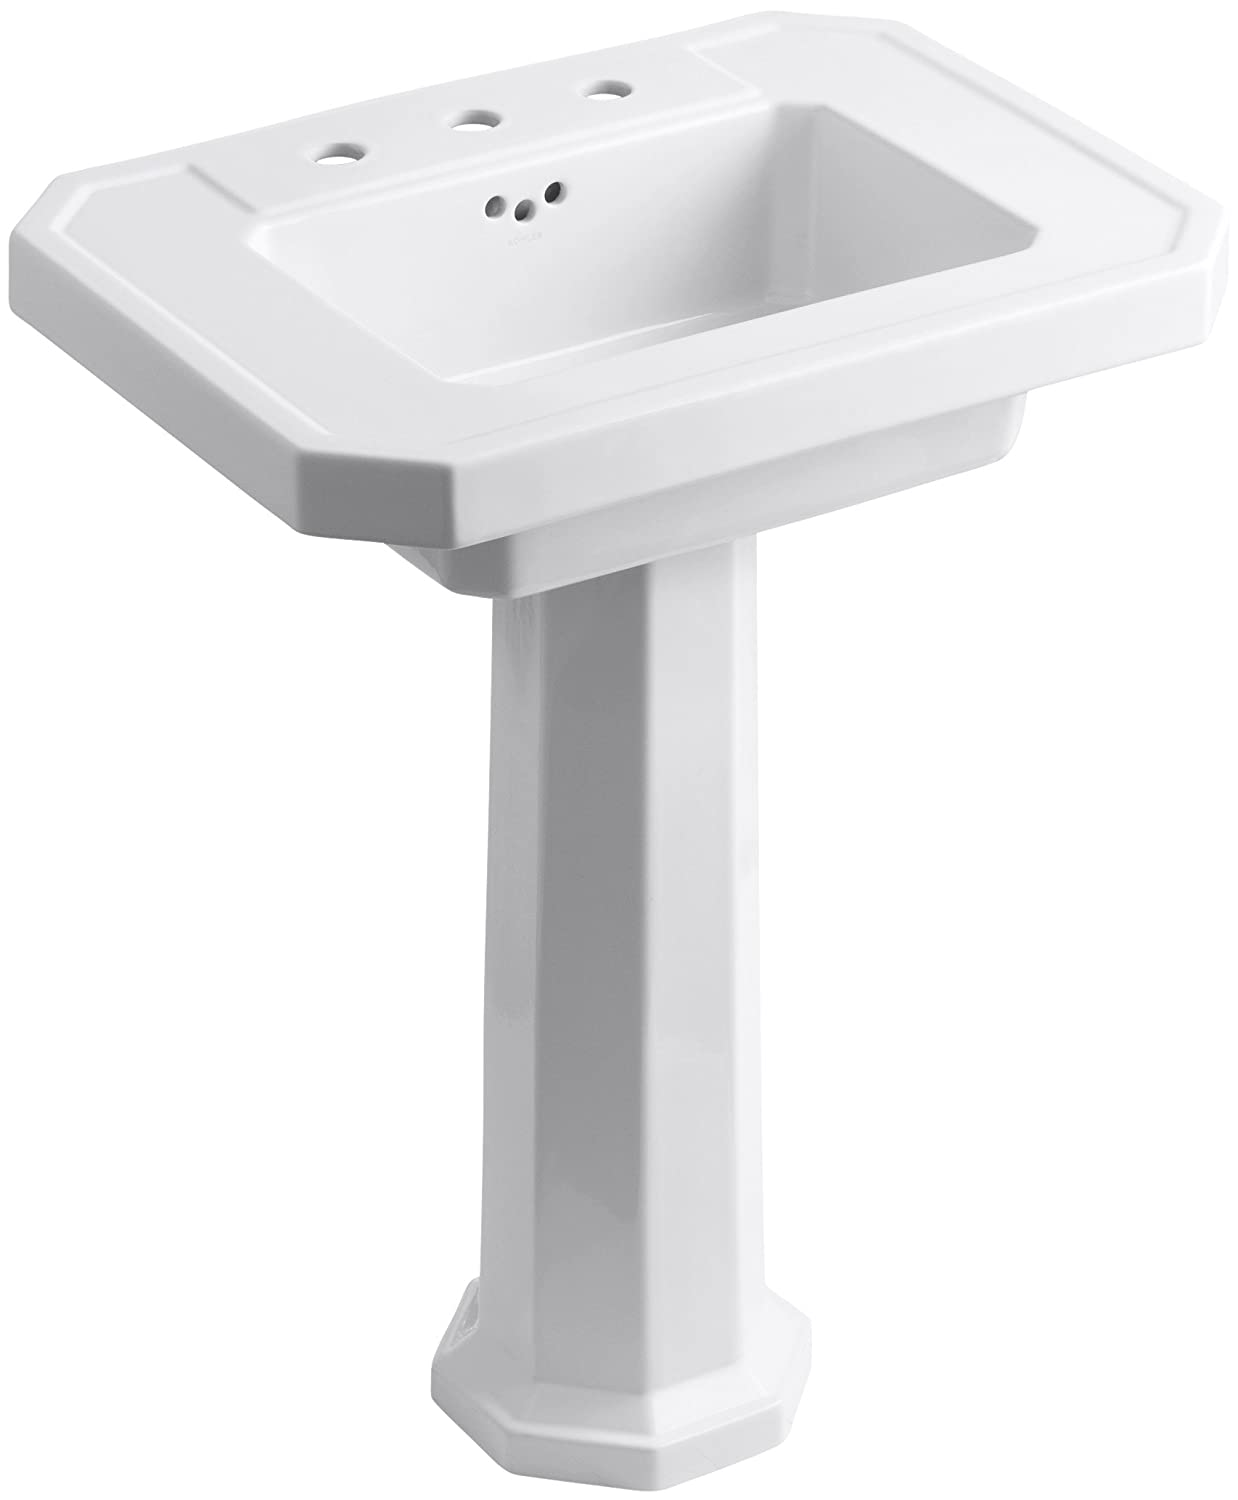 kohler k 2322 8 0 kathryn pedestal bathroom sink with 8 centers white pedestal sinks amazoncom